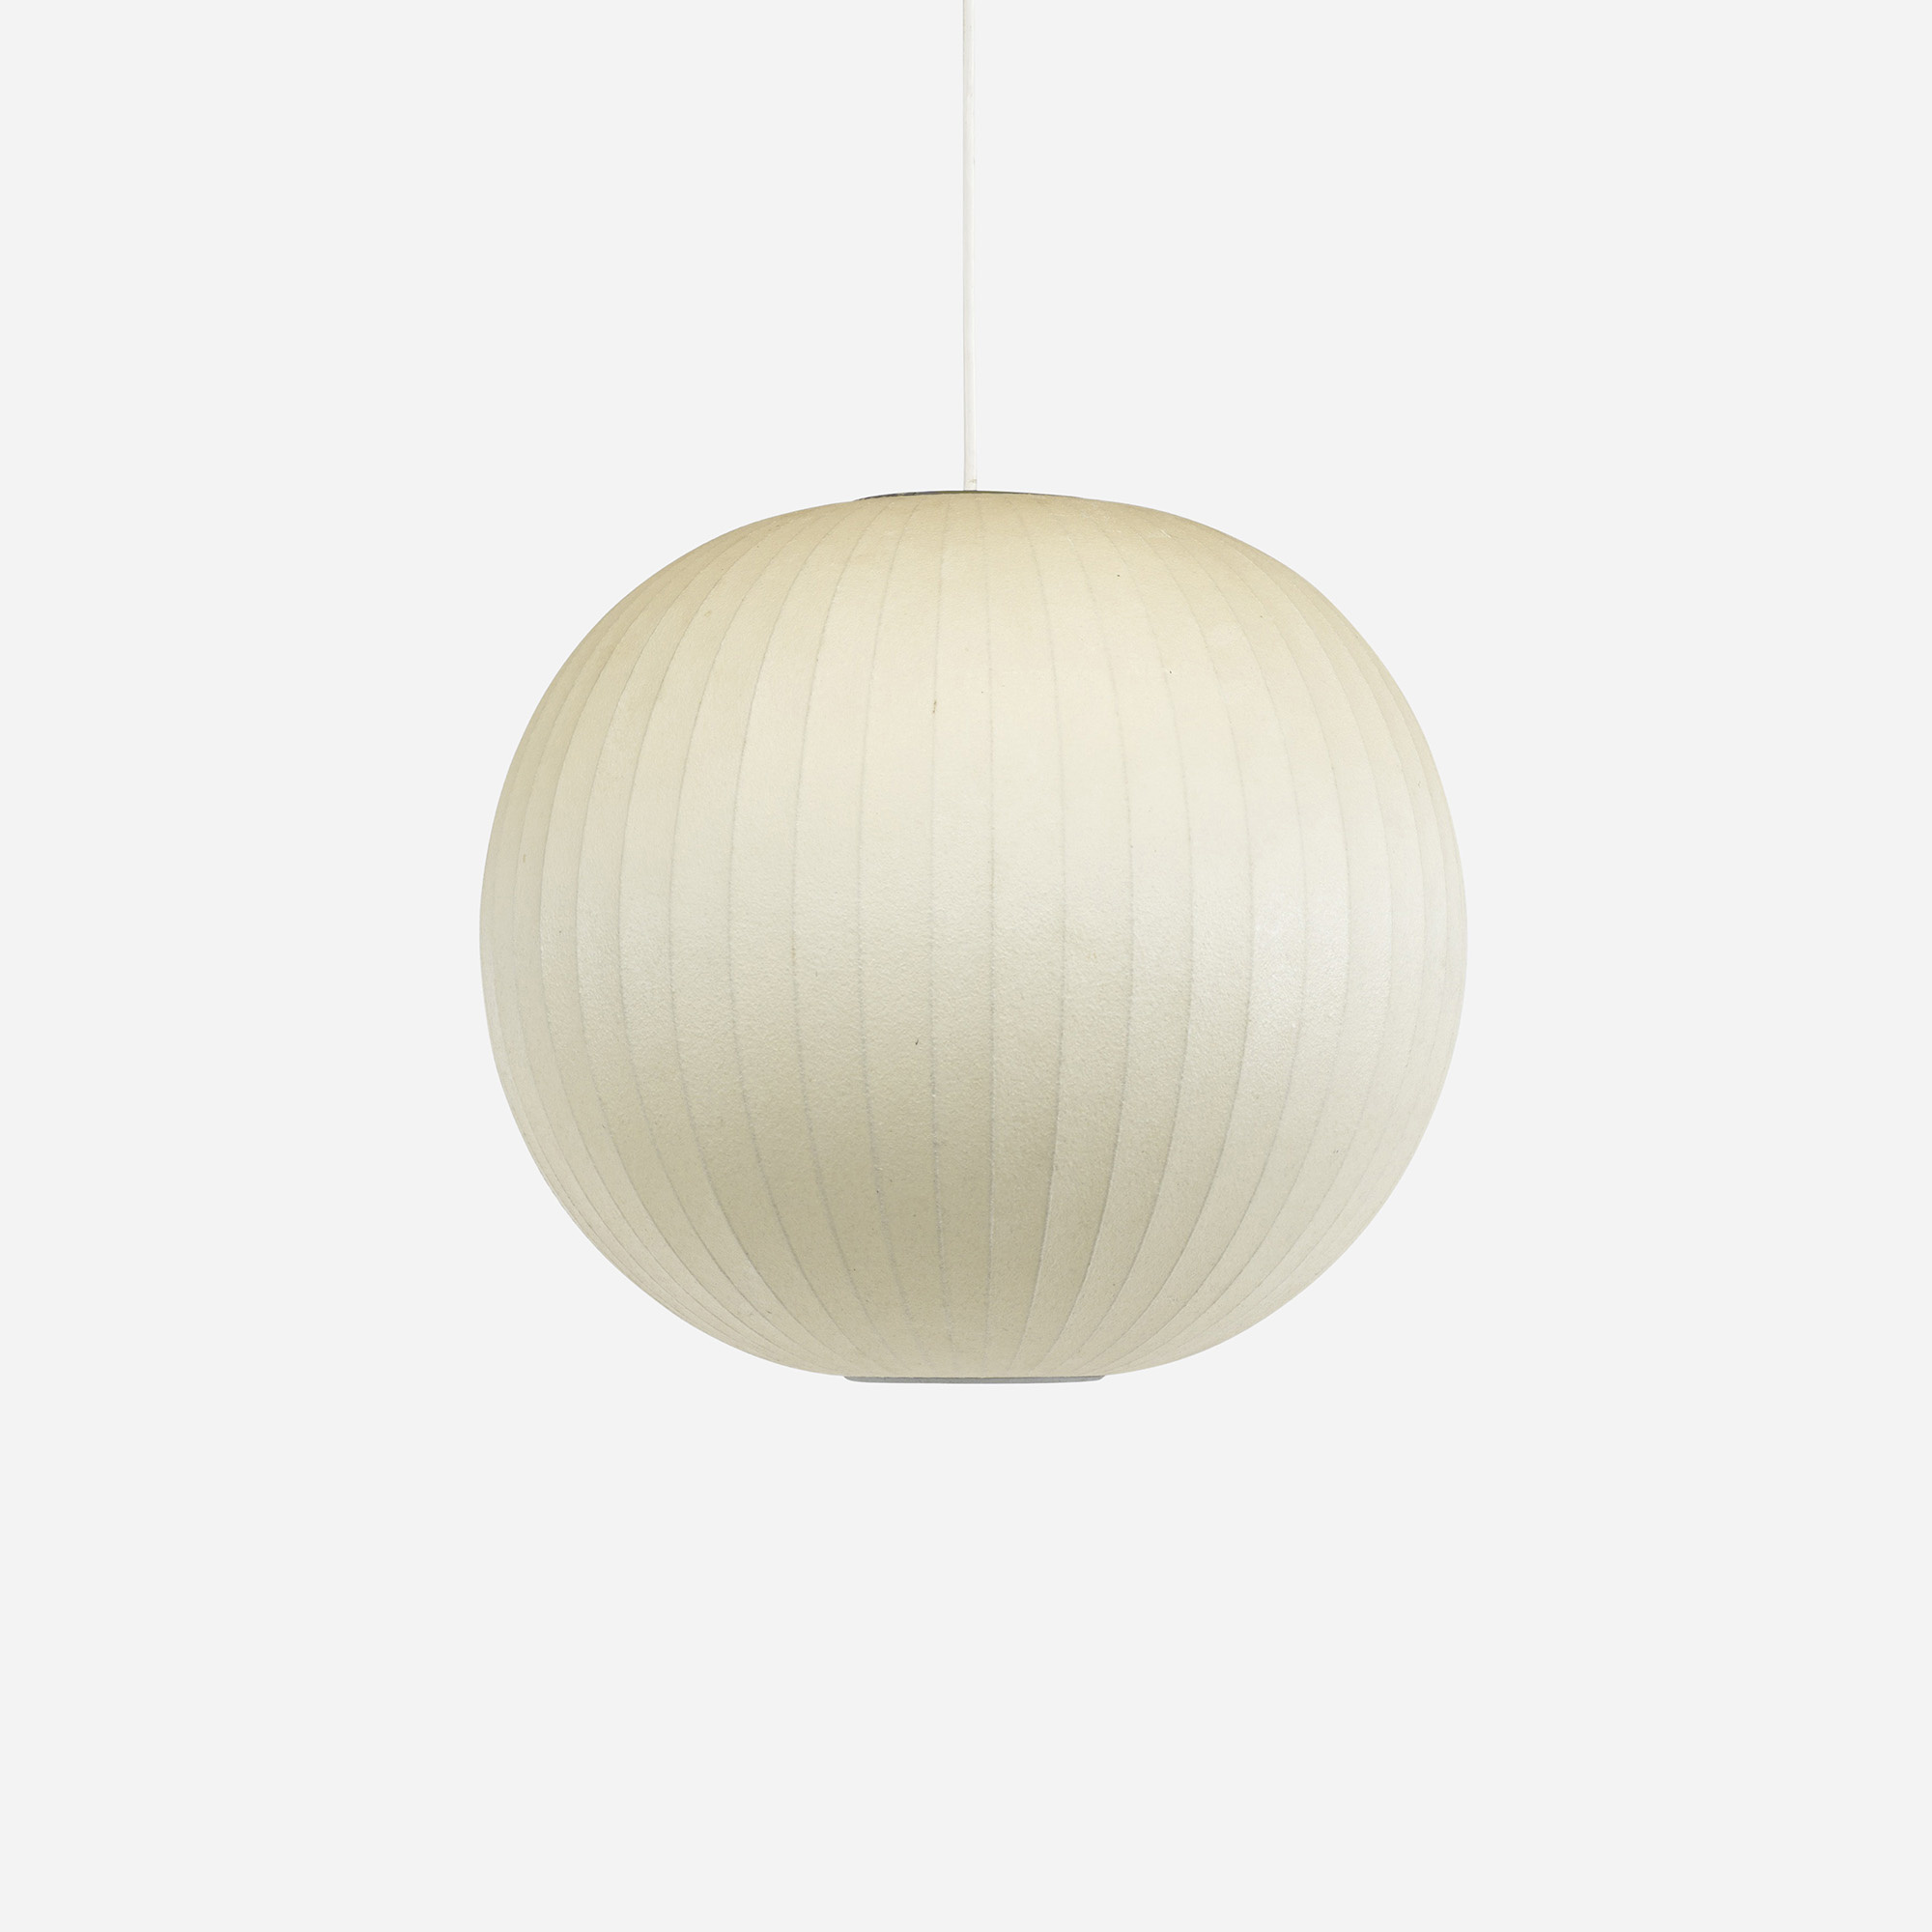 417 george nelson associates bubble hanging lamp 1 of